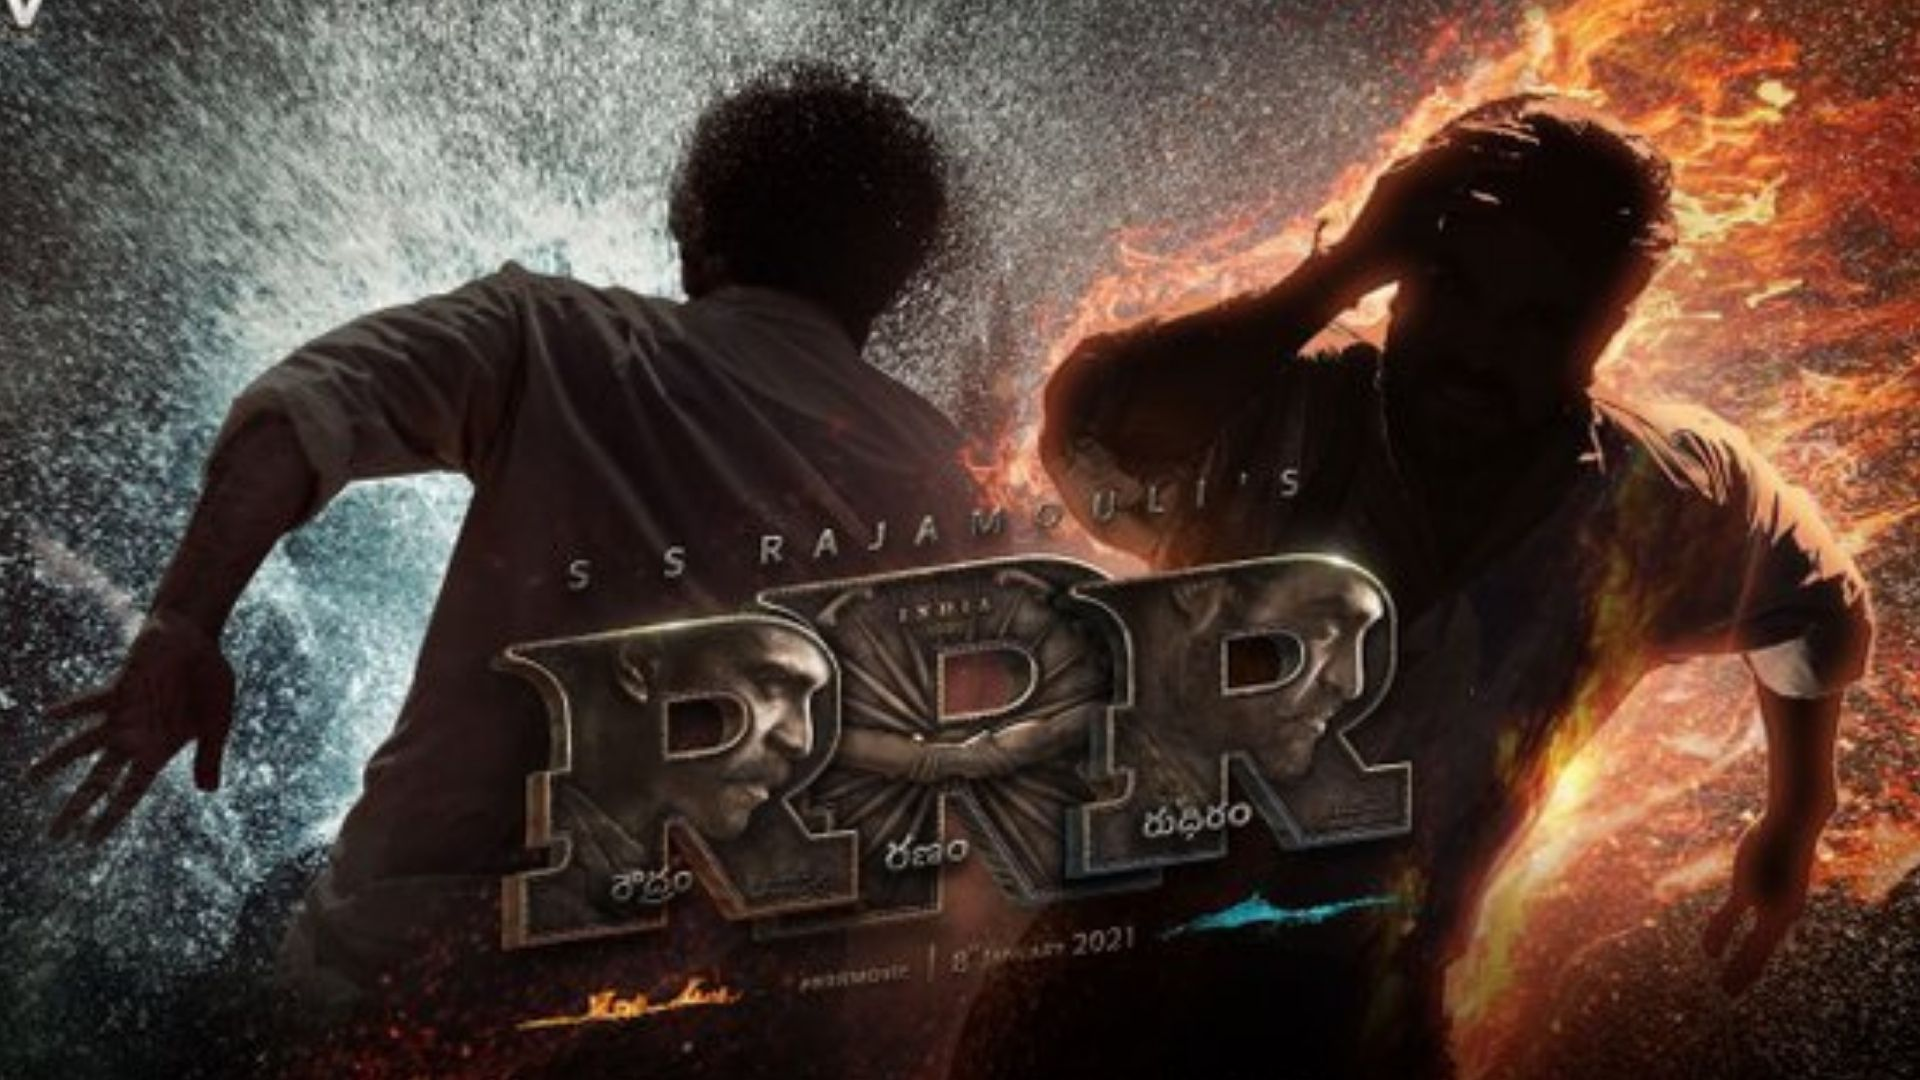 RRR New Poster: After Gangubai Kathiawadi, Ajay Devgn And Alia Bhatt's SS Rajamouli Directorial Gets A Release Date – DEETS INSIDE